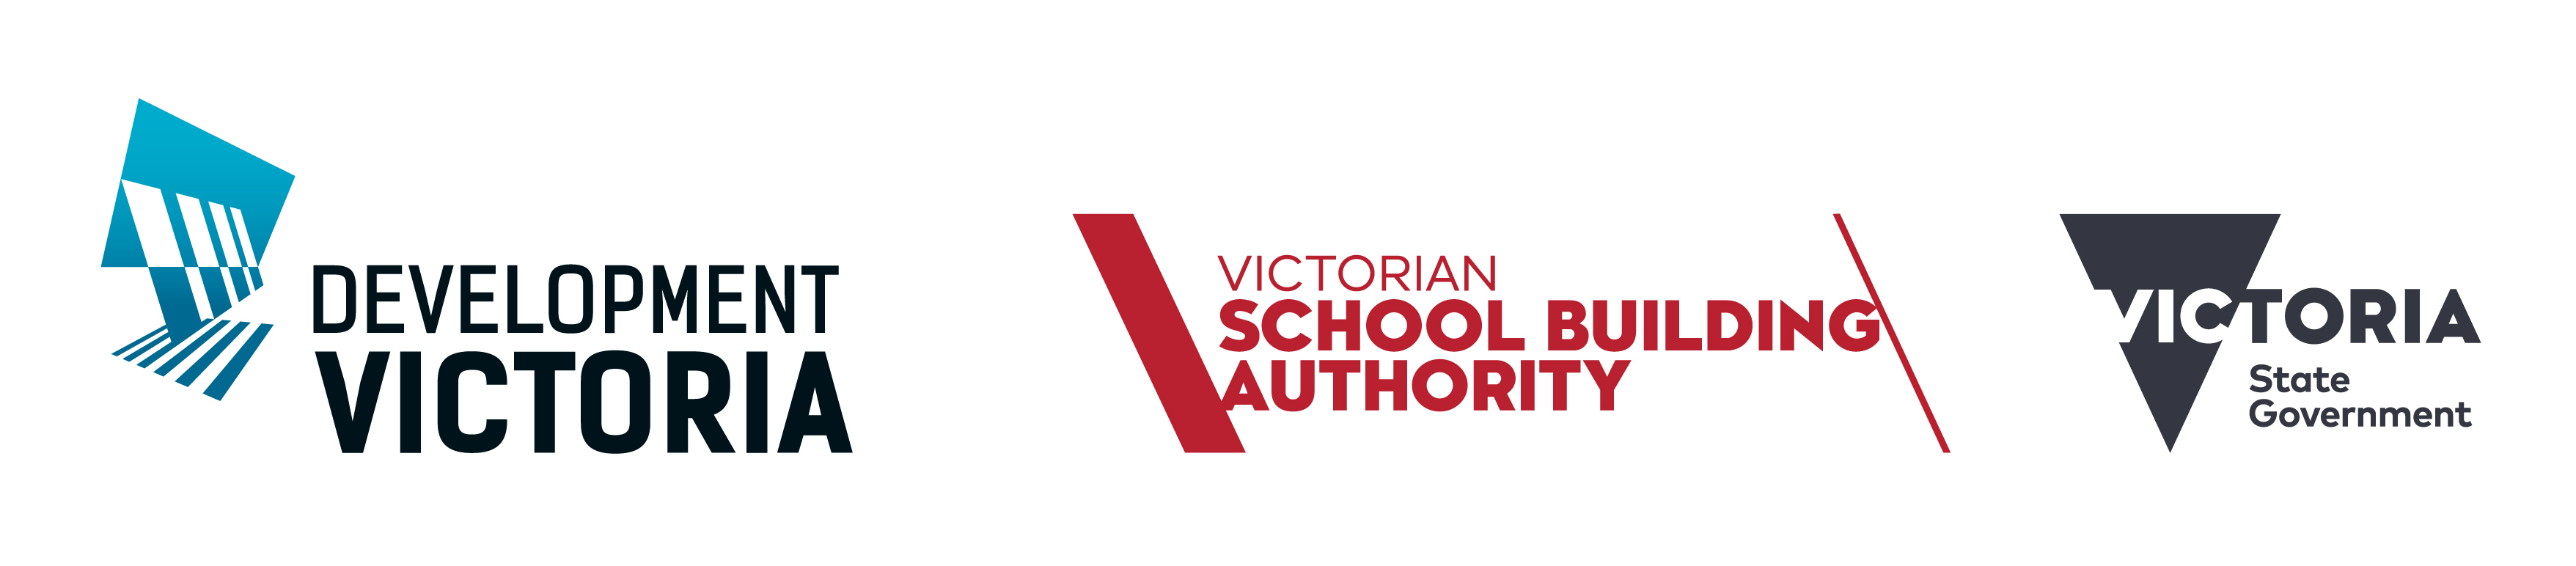 Development Victoria logo and Victorian School Building Authority logo